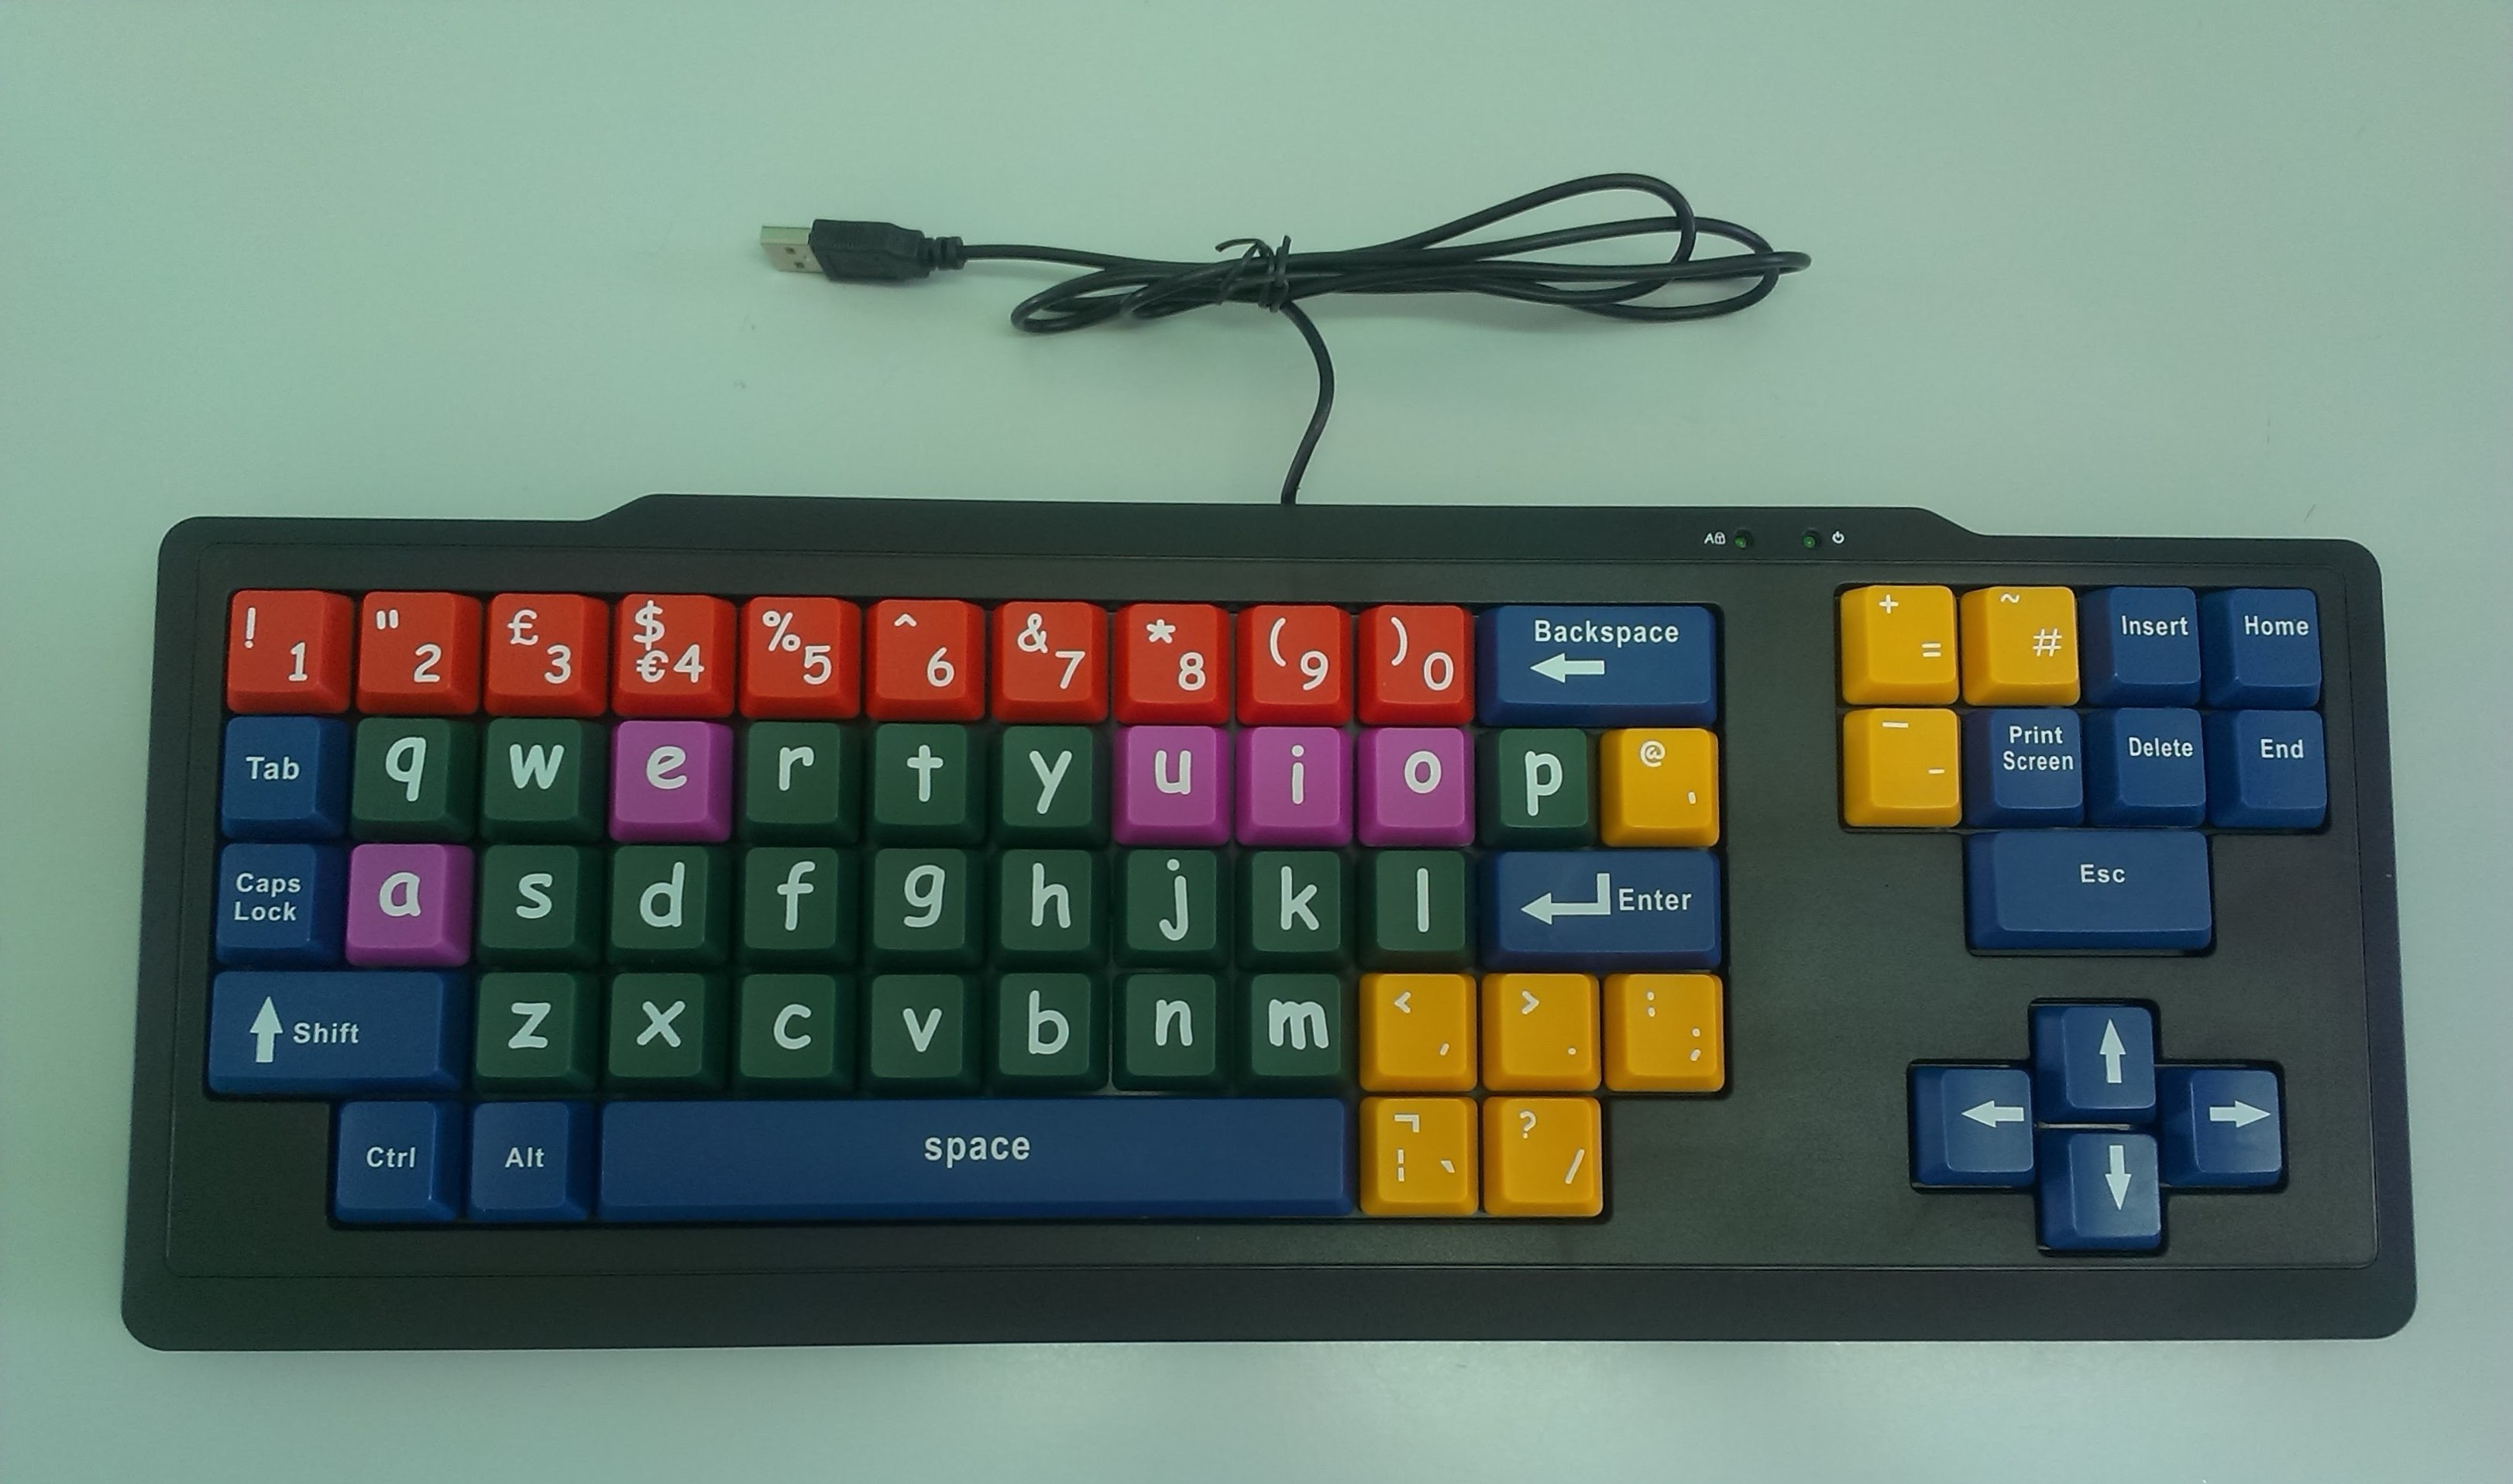 Jumbo keys keyboard - lowercase